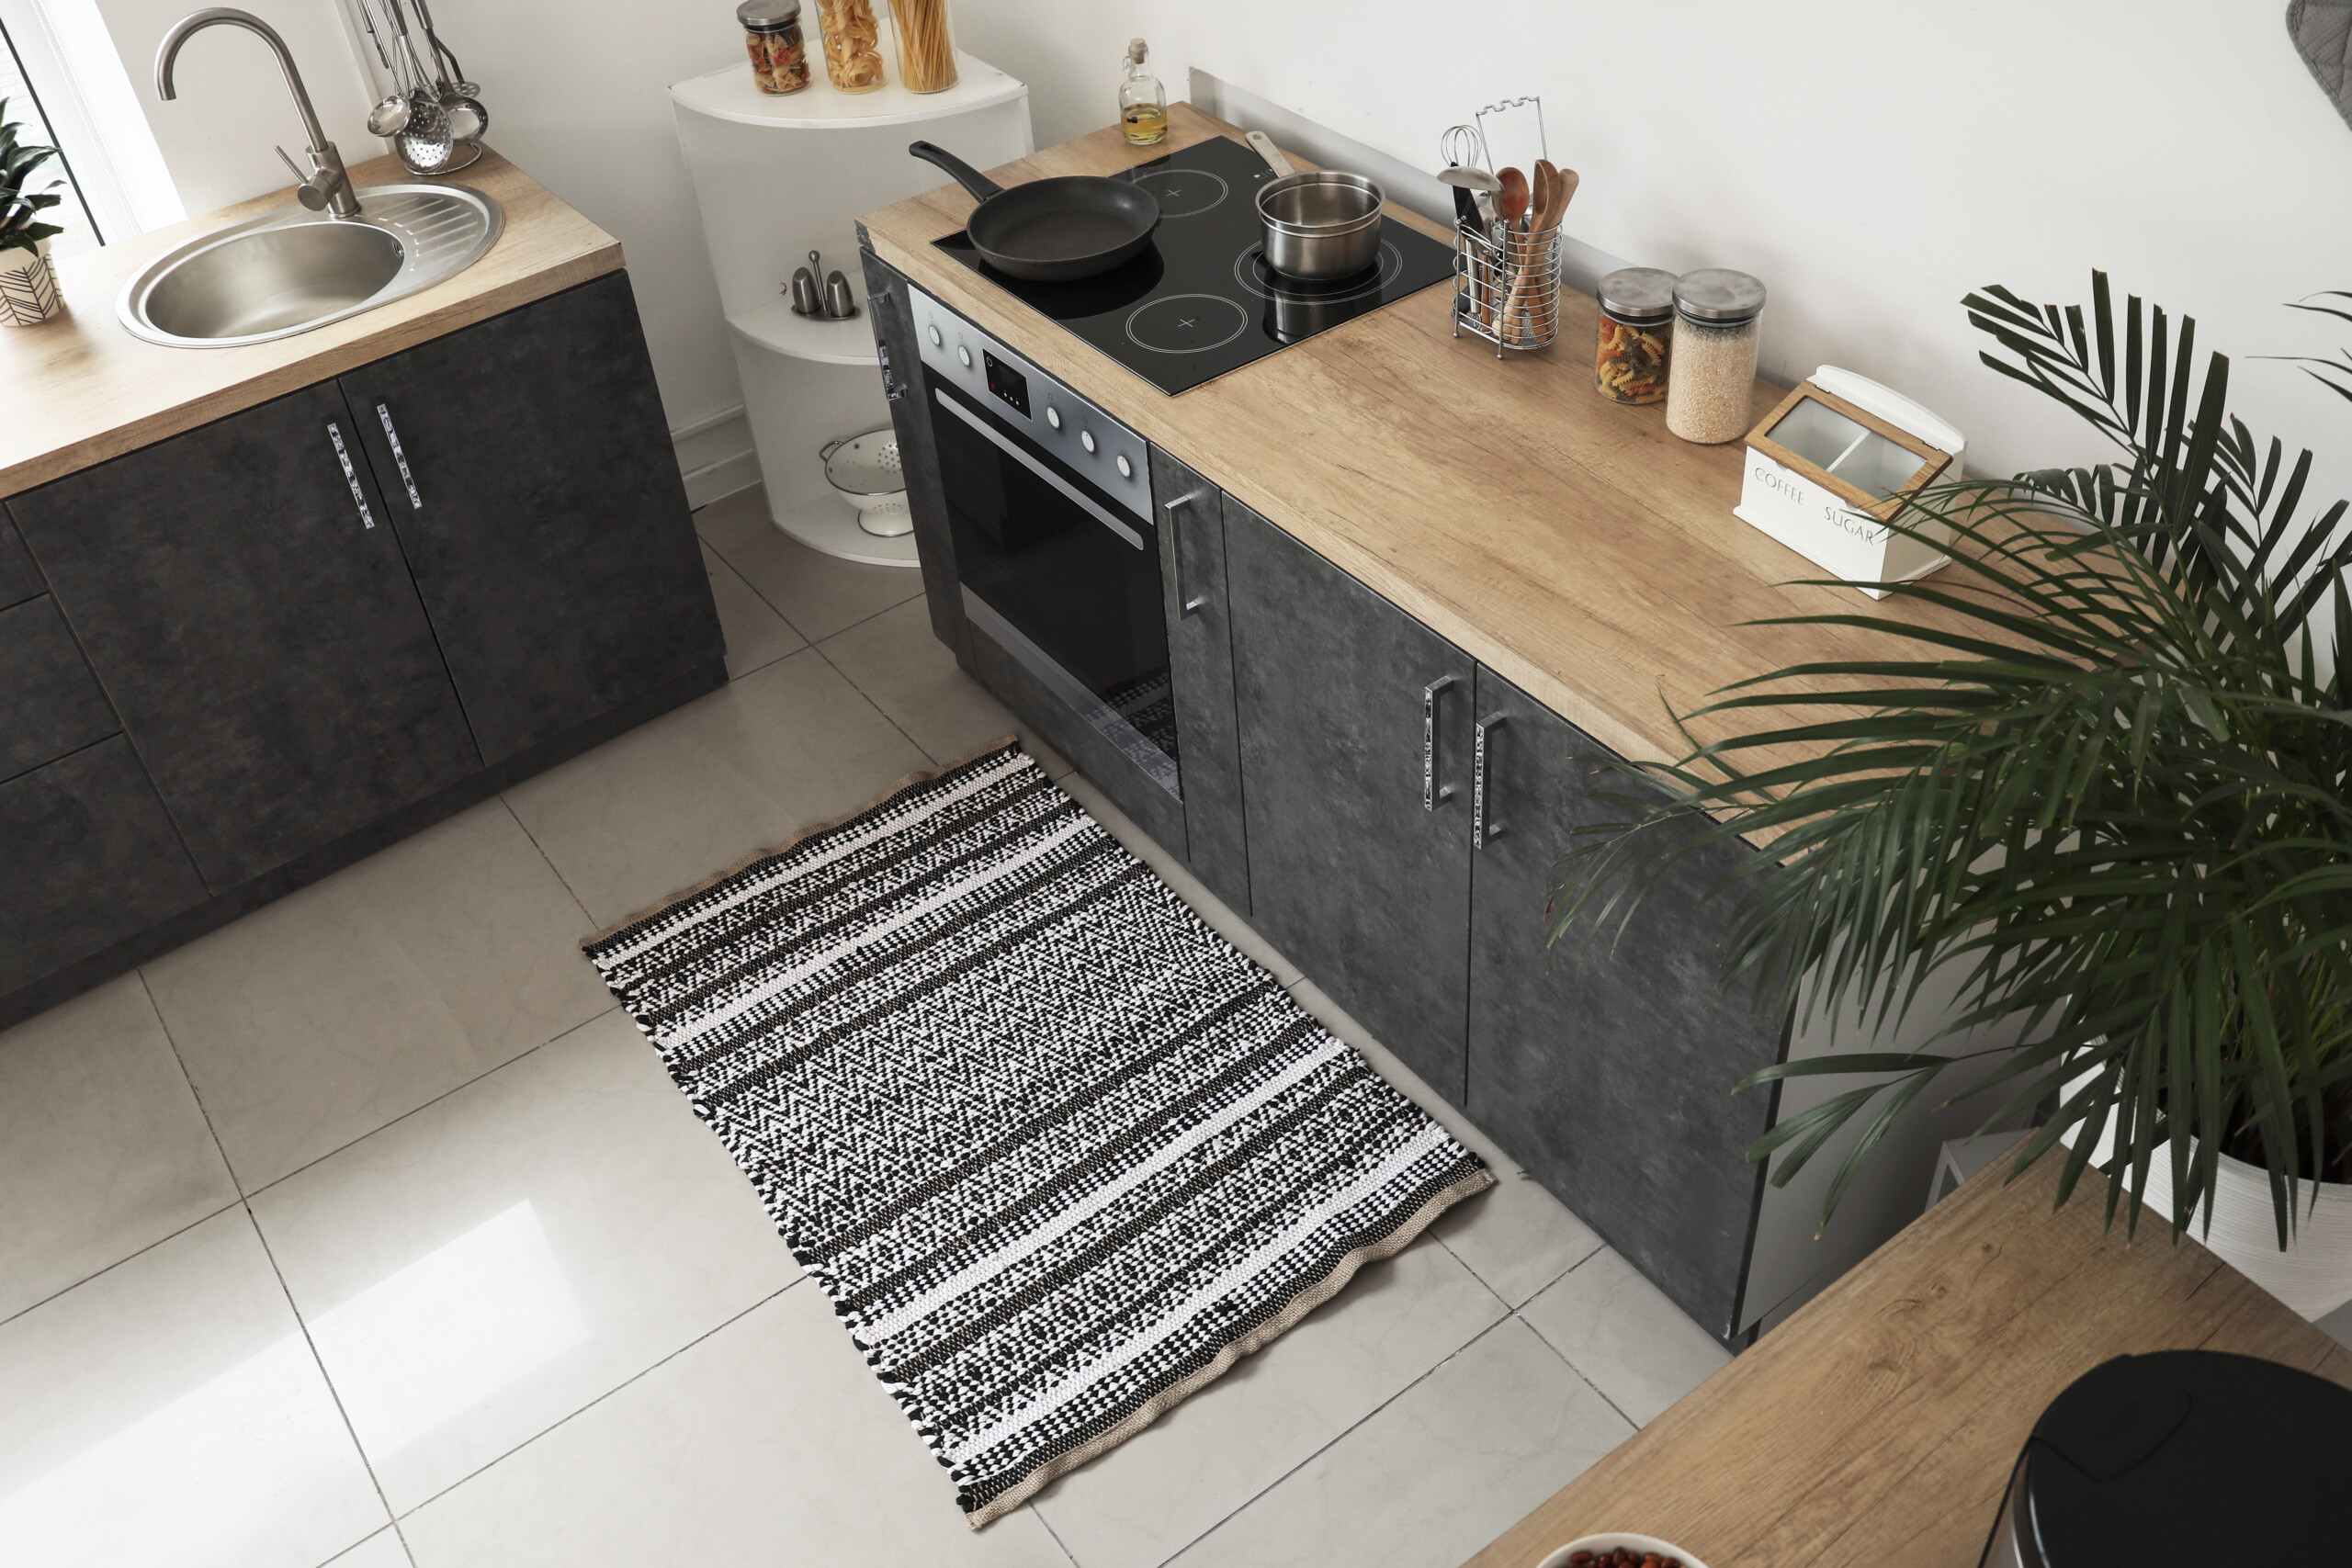 Kitchen Rug Ideas Here S How To Find The Right One Decor Aid